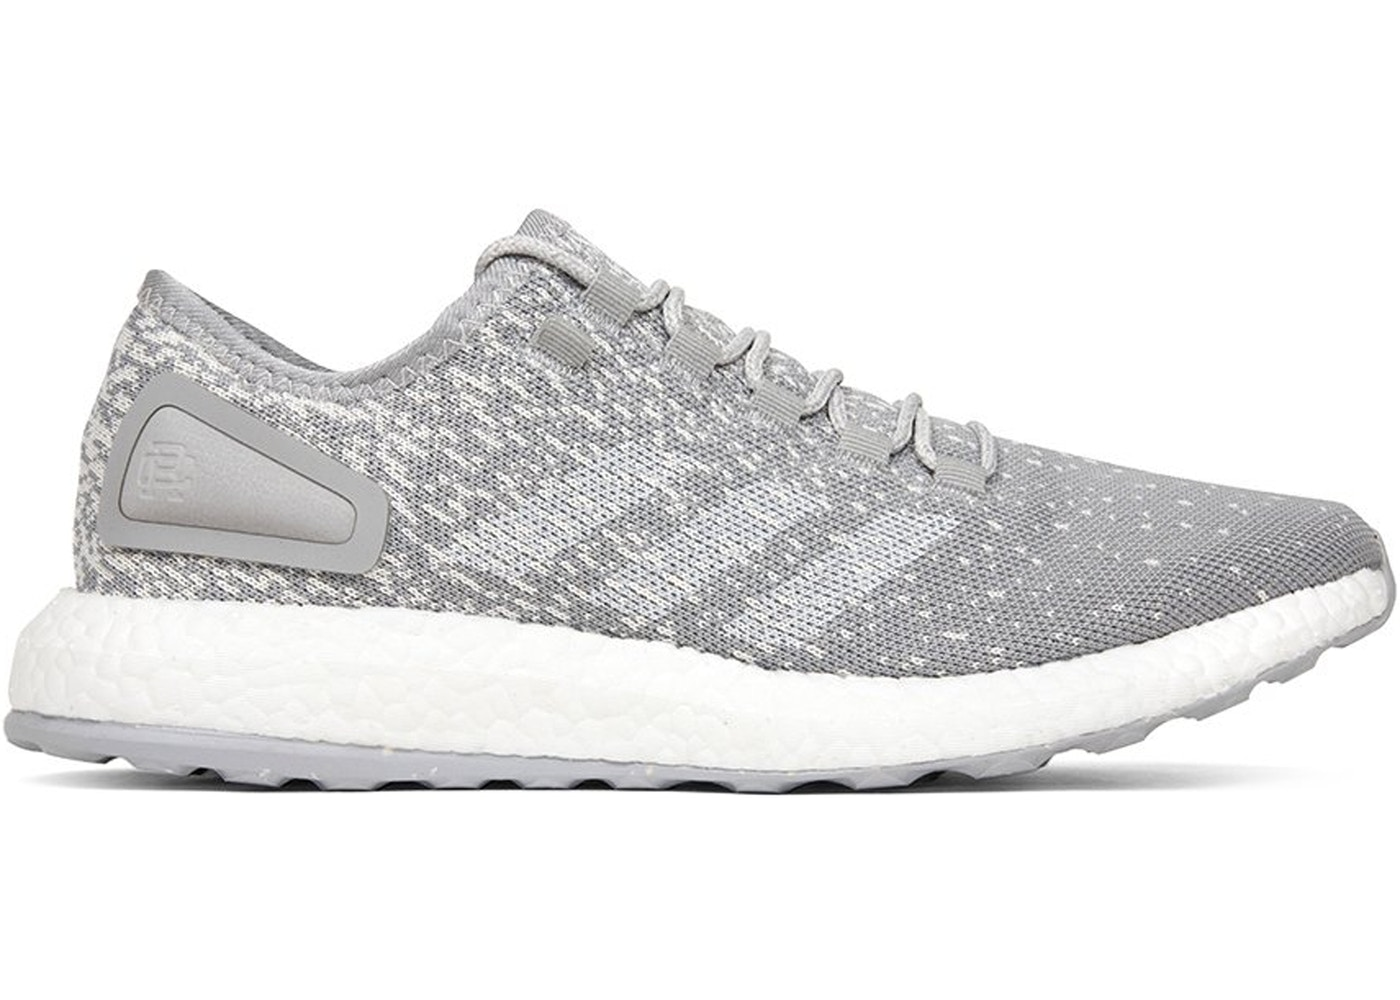 check out fec73 2314b Sell. or Ask. Size 10.5. View All Bids. adidas Pureboost Reigning Champ  Grey